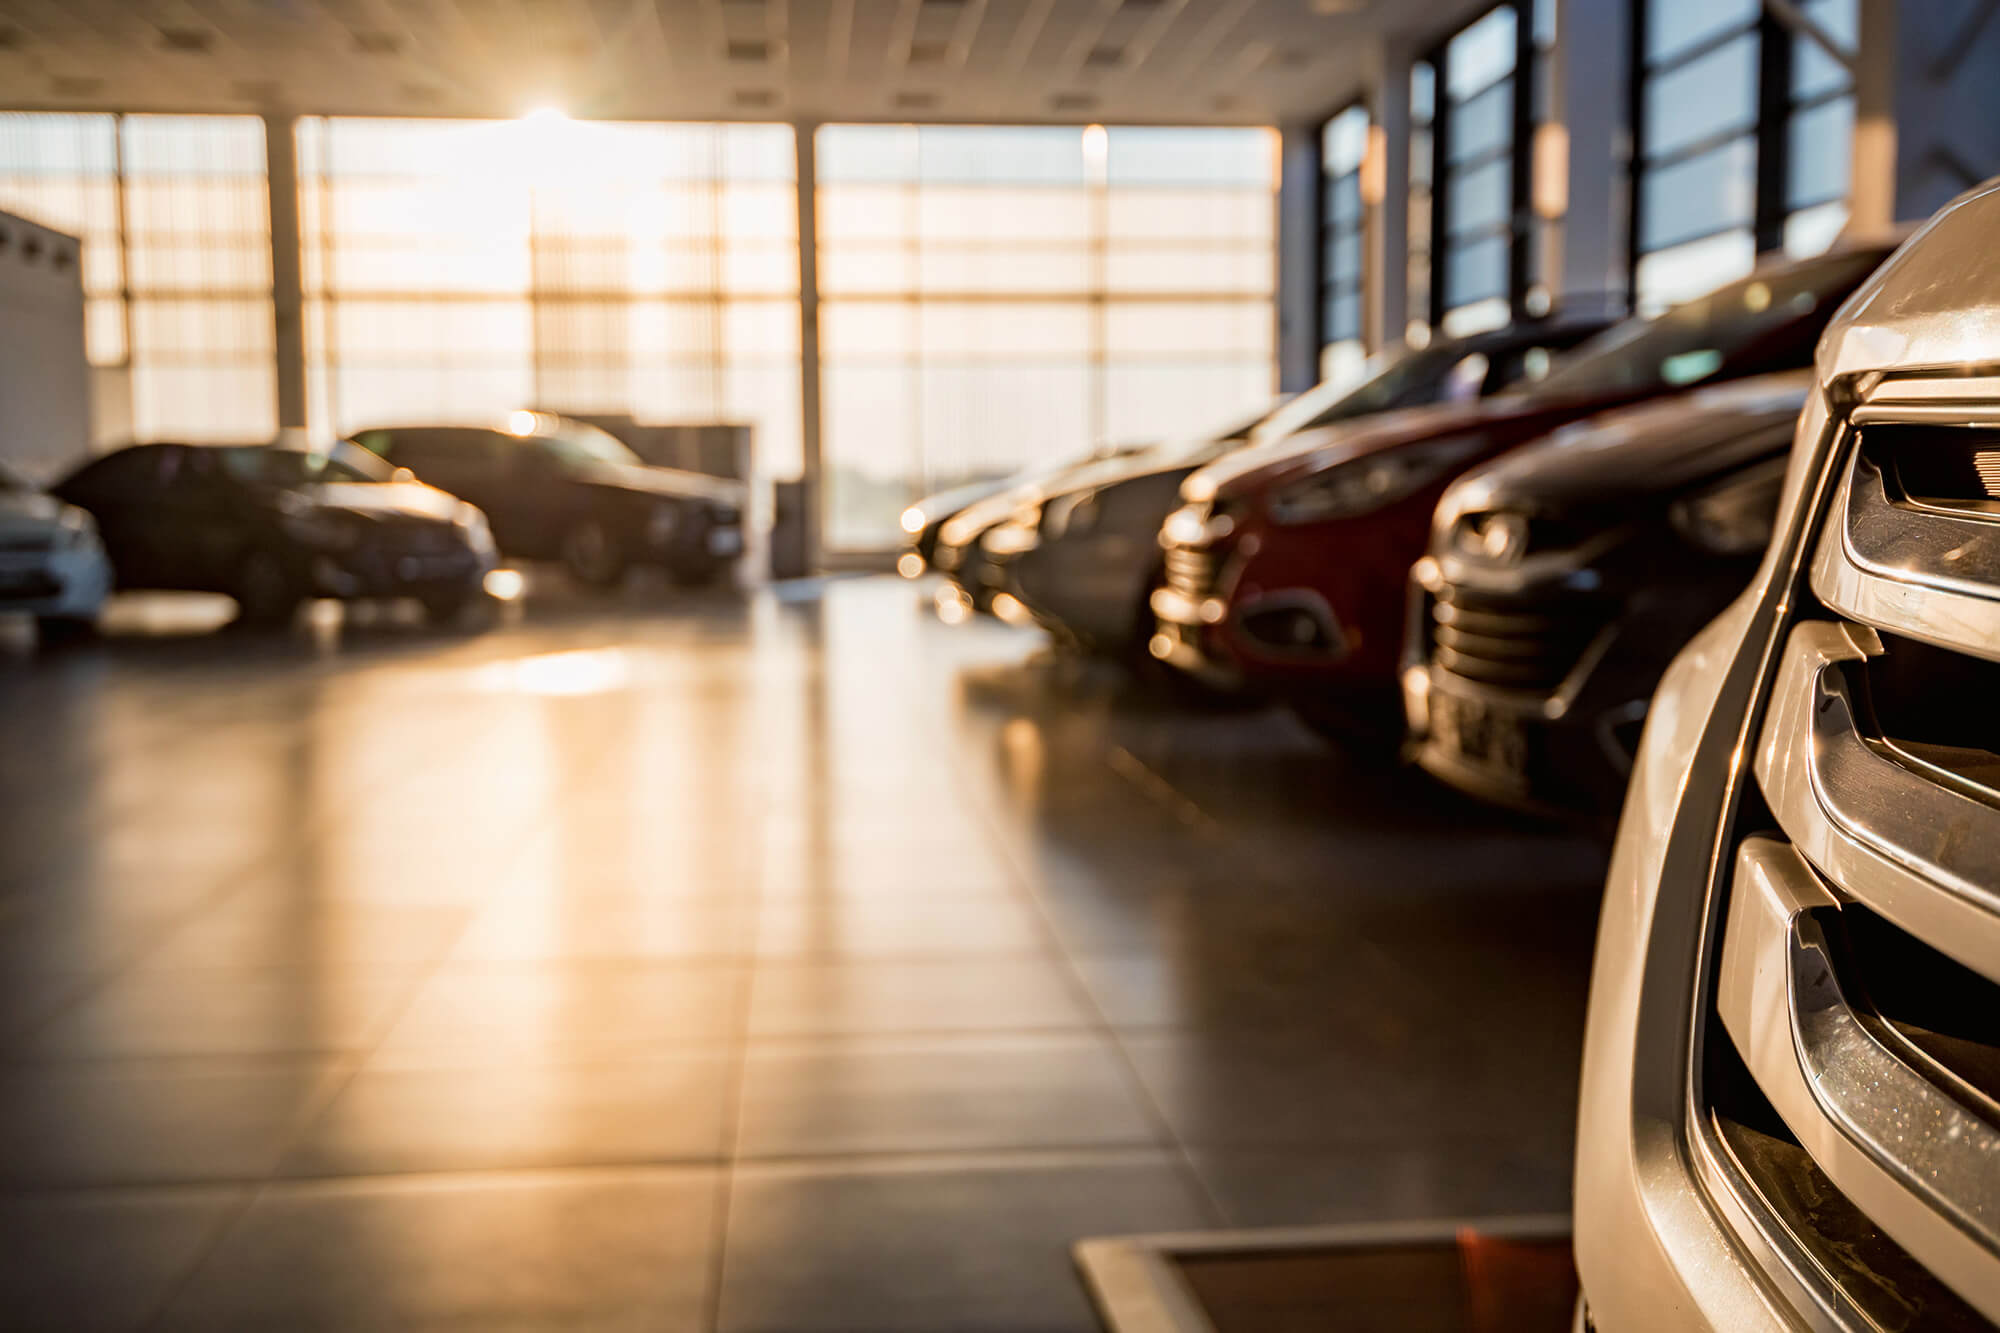 The Drive For Data: The Future of Automotive Marketing in a Customer-Centric World